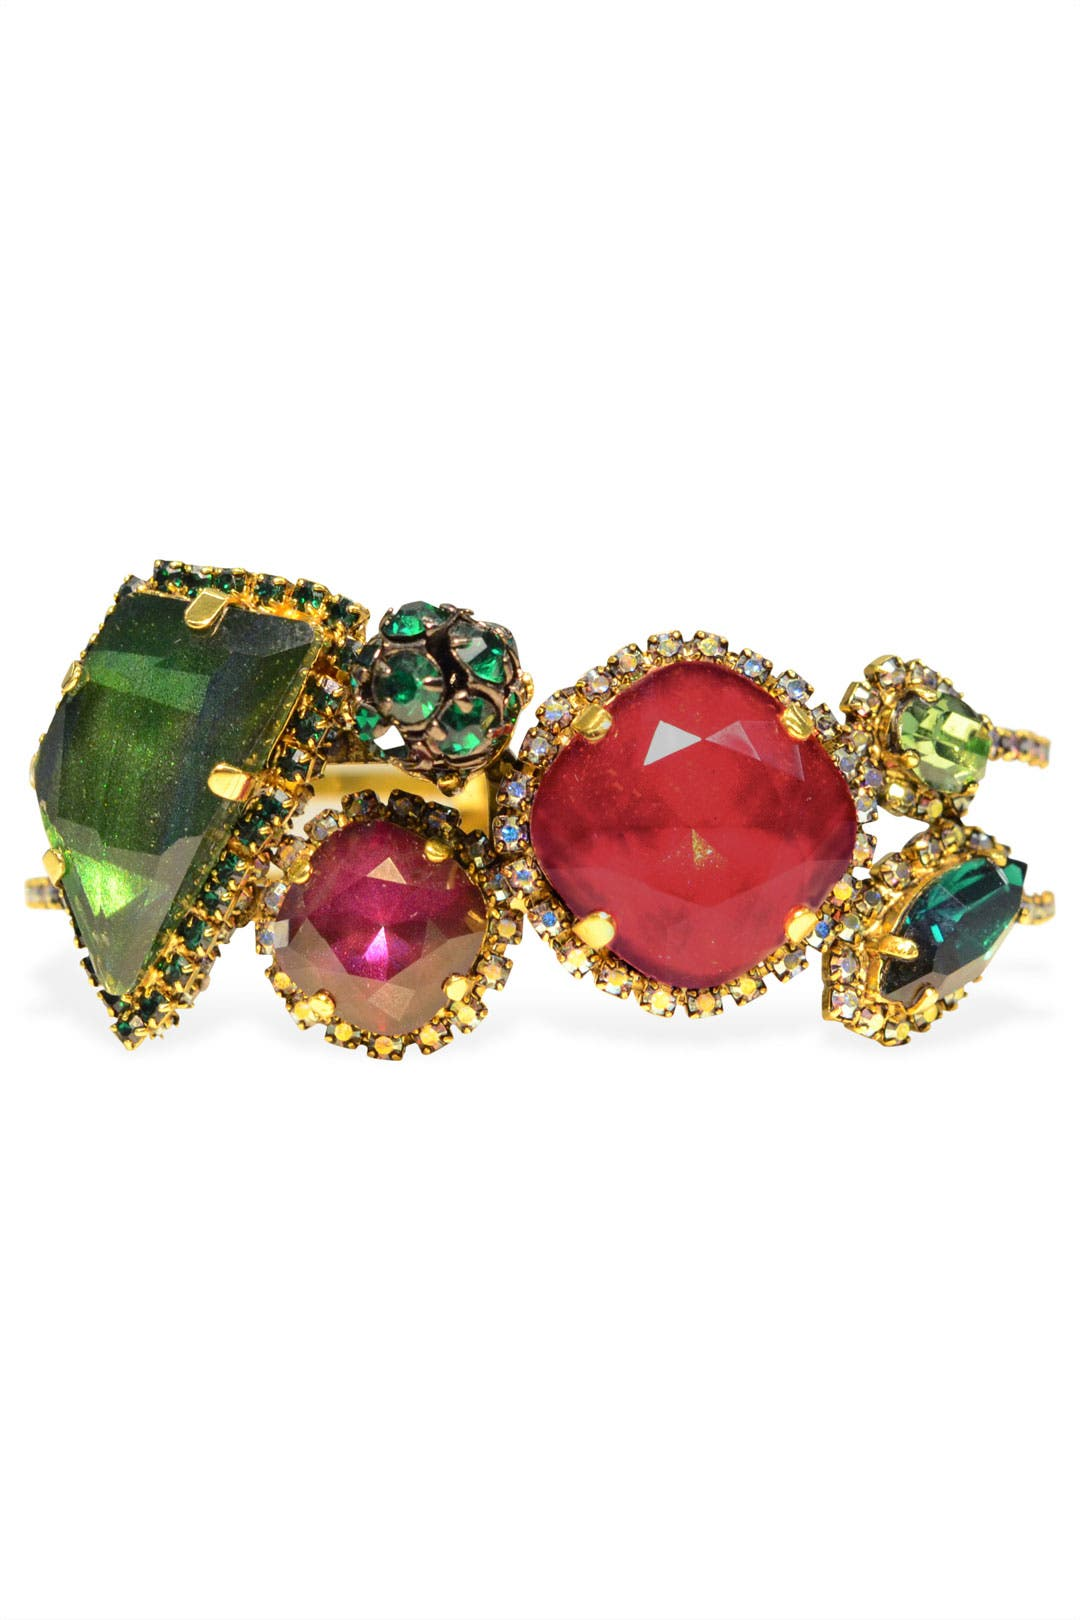 Jeweled Envy Bracelet by Erickson Beamon